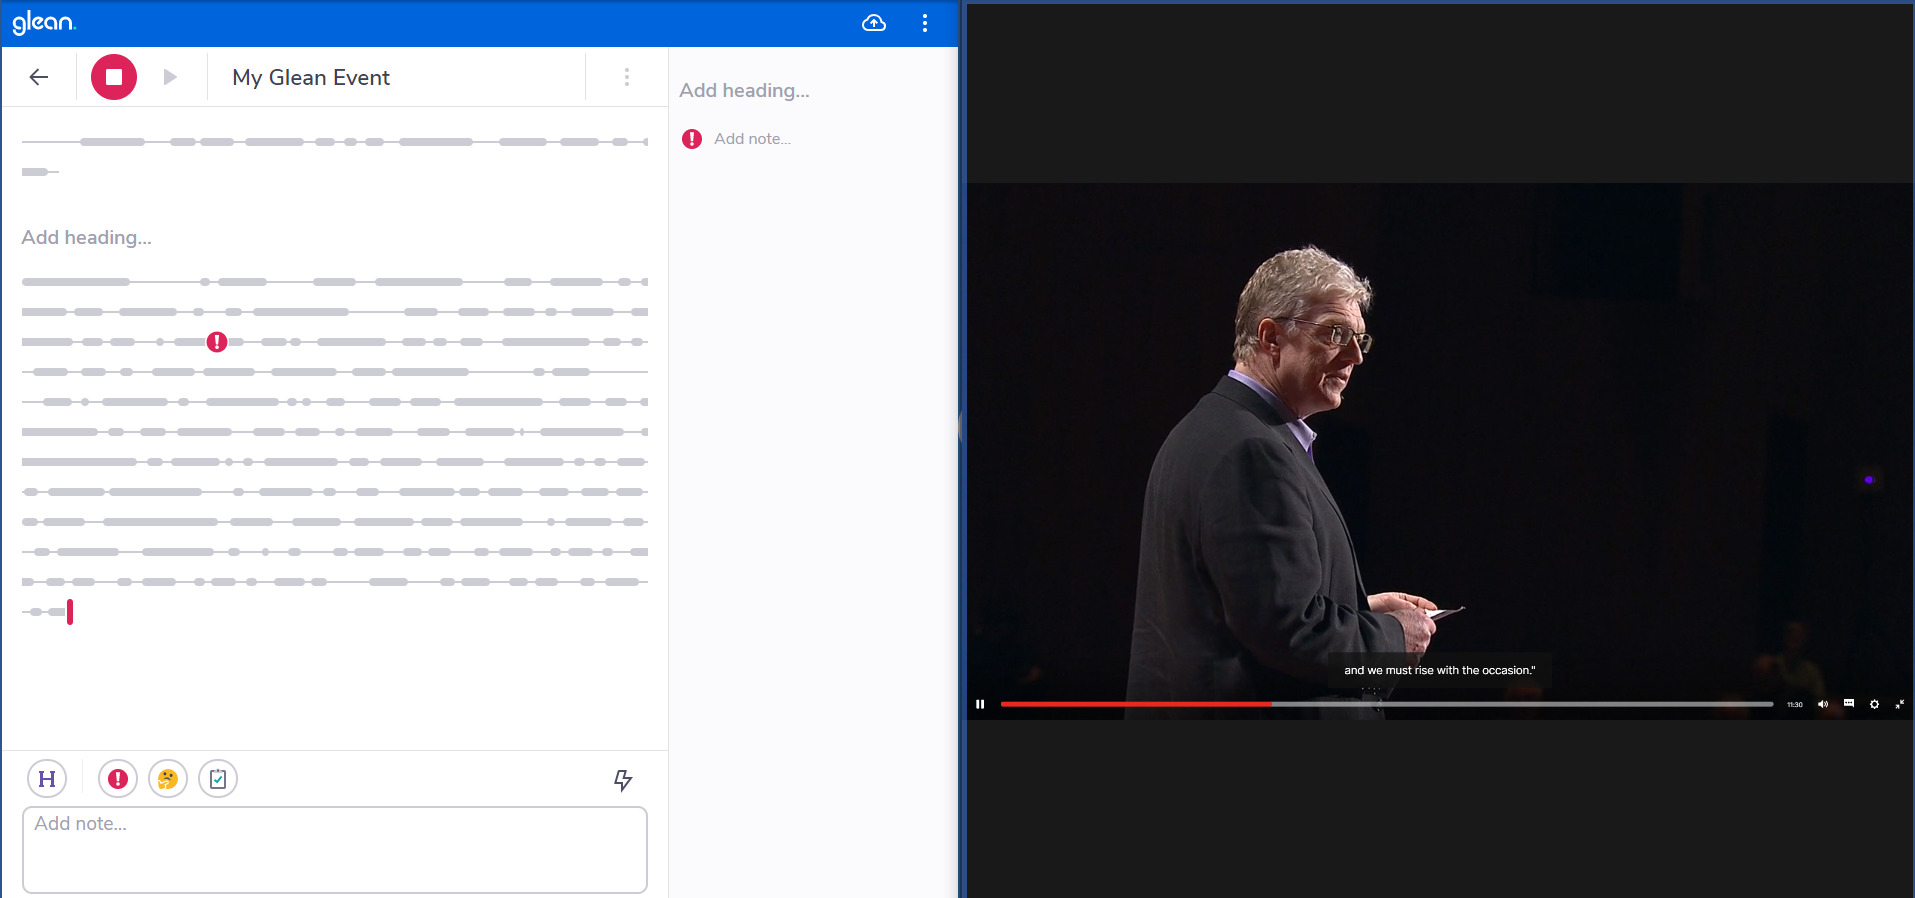 Glean and an online video side-by-side in split screen.